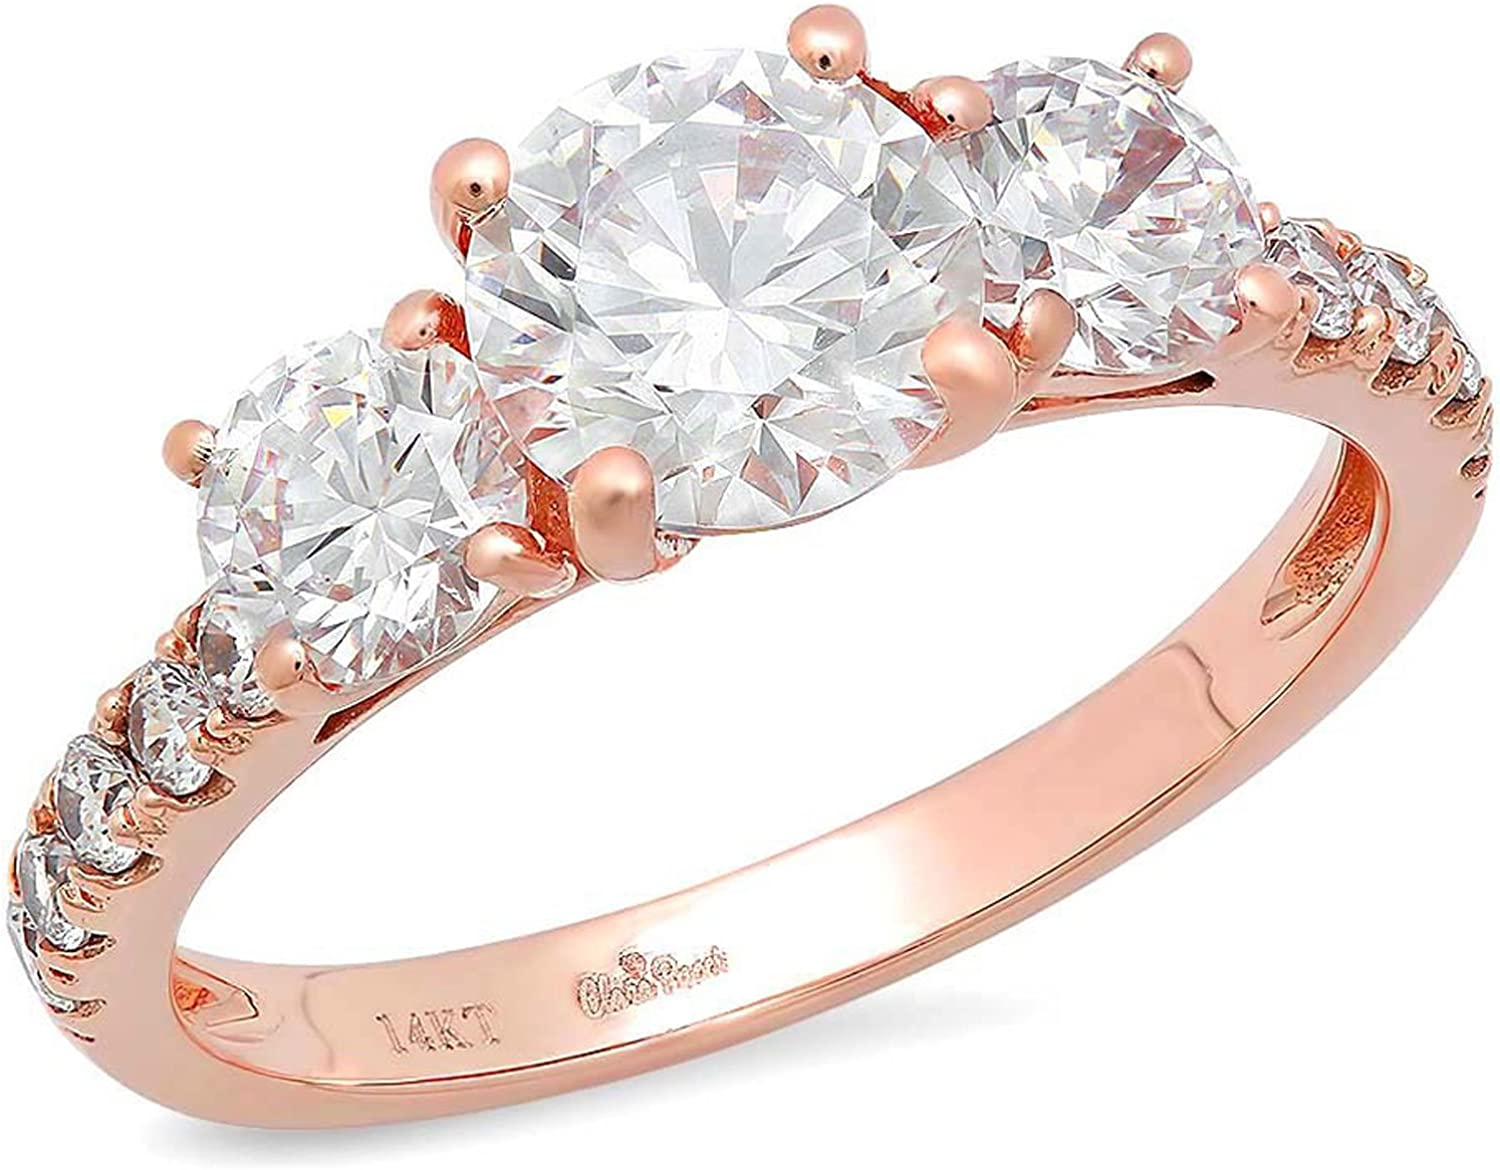 Clara Pucci 1.80 CT Round Cut CZ Pave Three Stone Accent Designer Solitaire Band Ring 14K Rose Gold